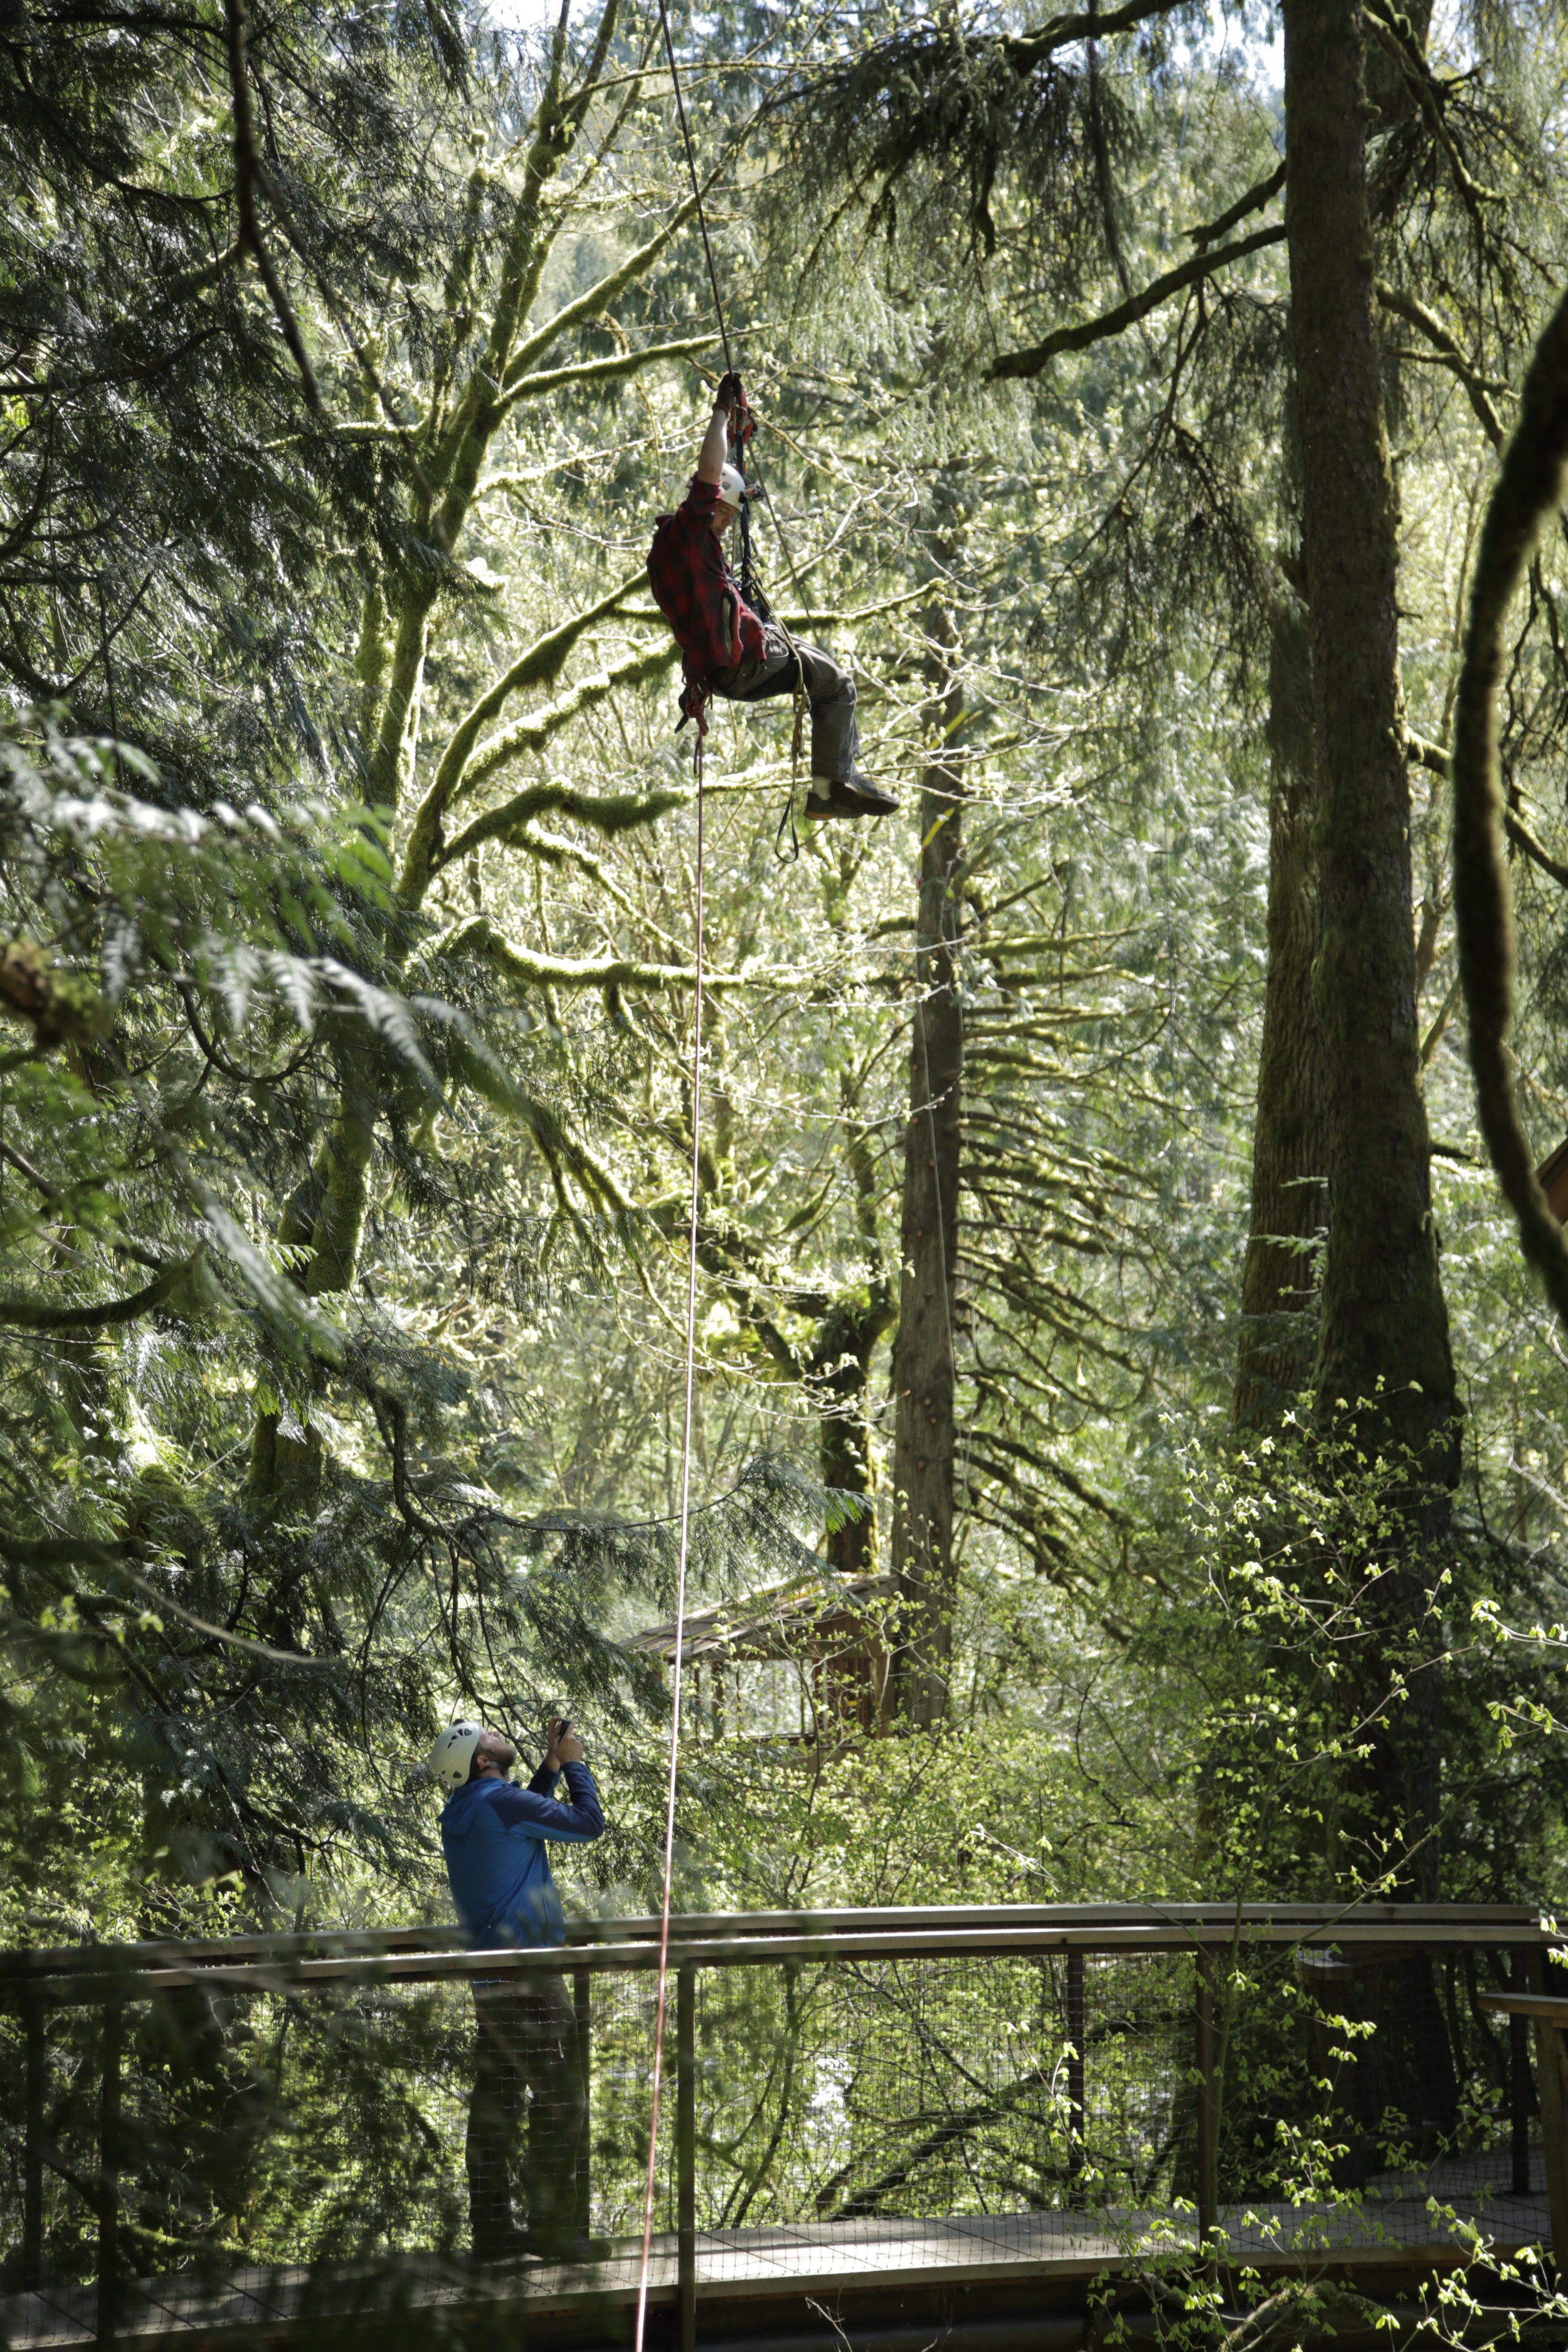 during his time with NT&S, Devin has acquired excellent rigging and tree-climbing skills.